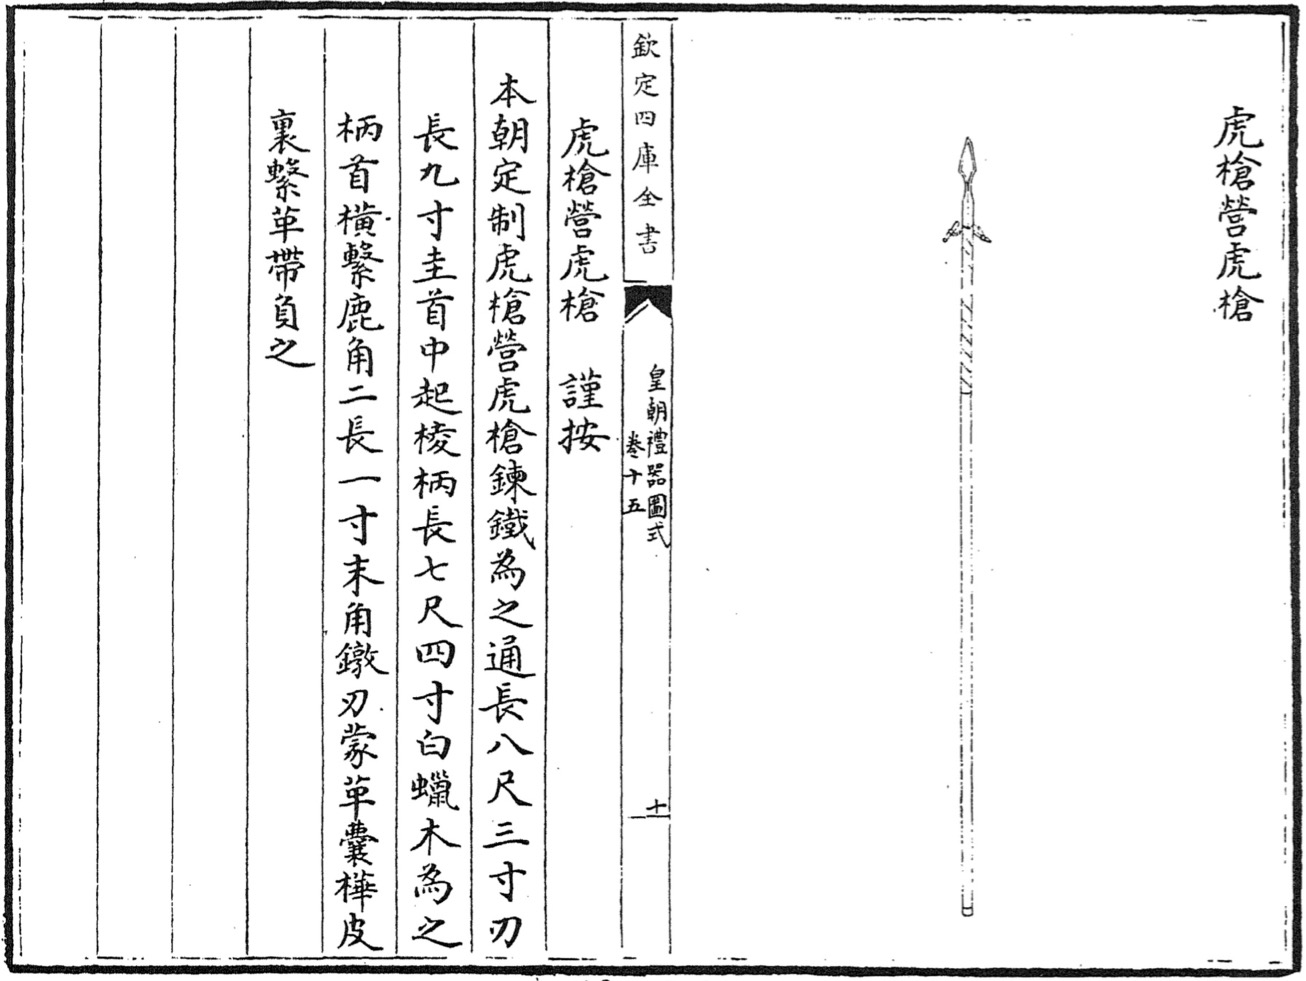 Qing Tiger Spear